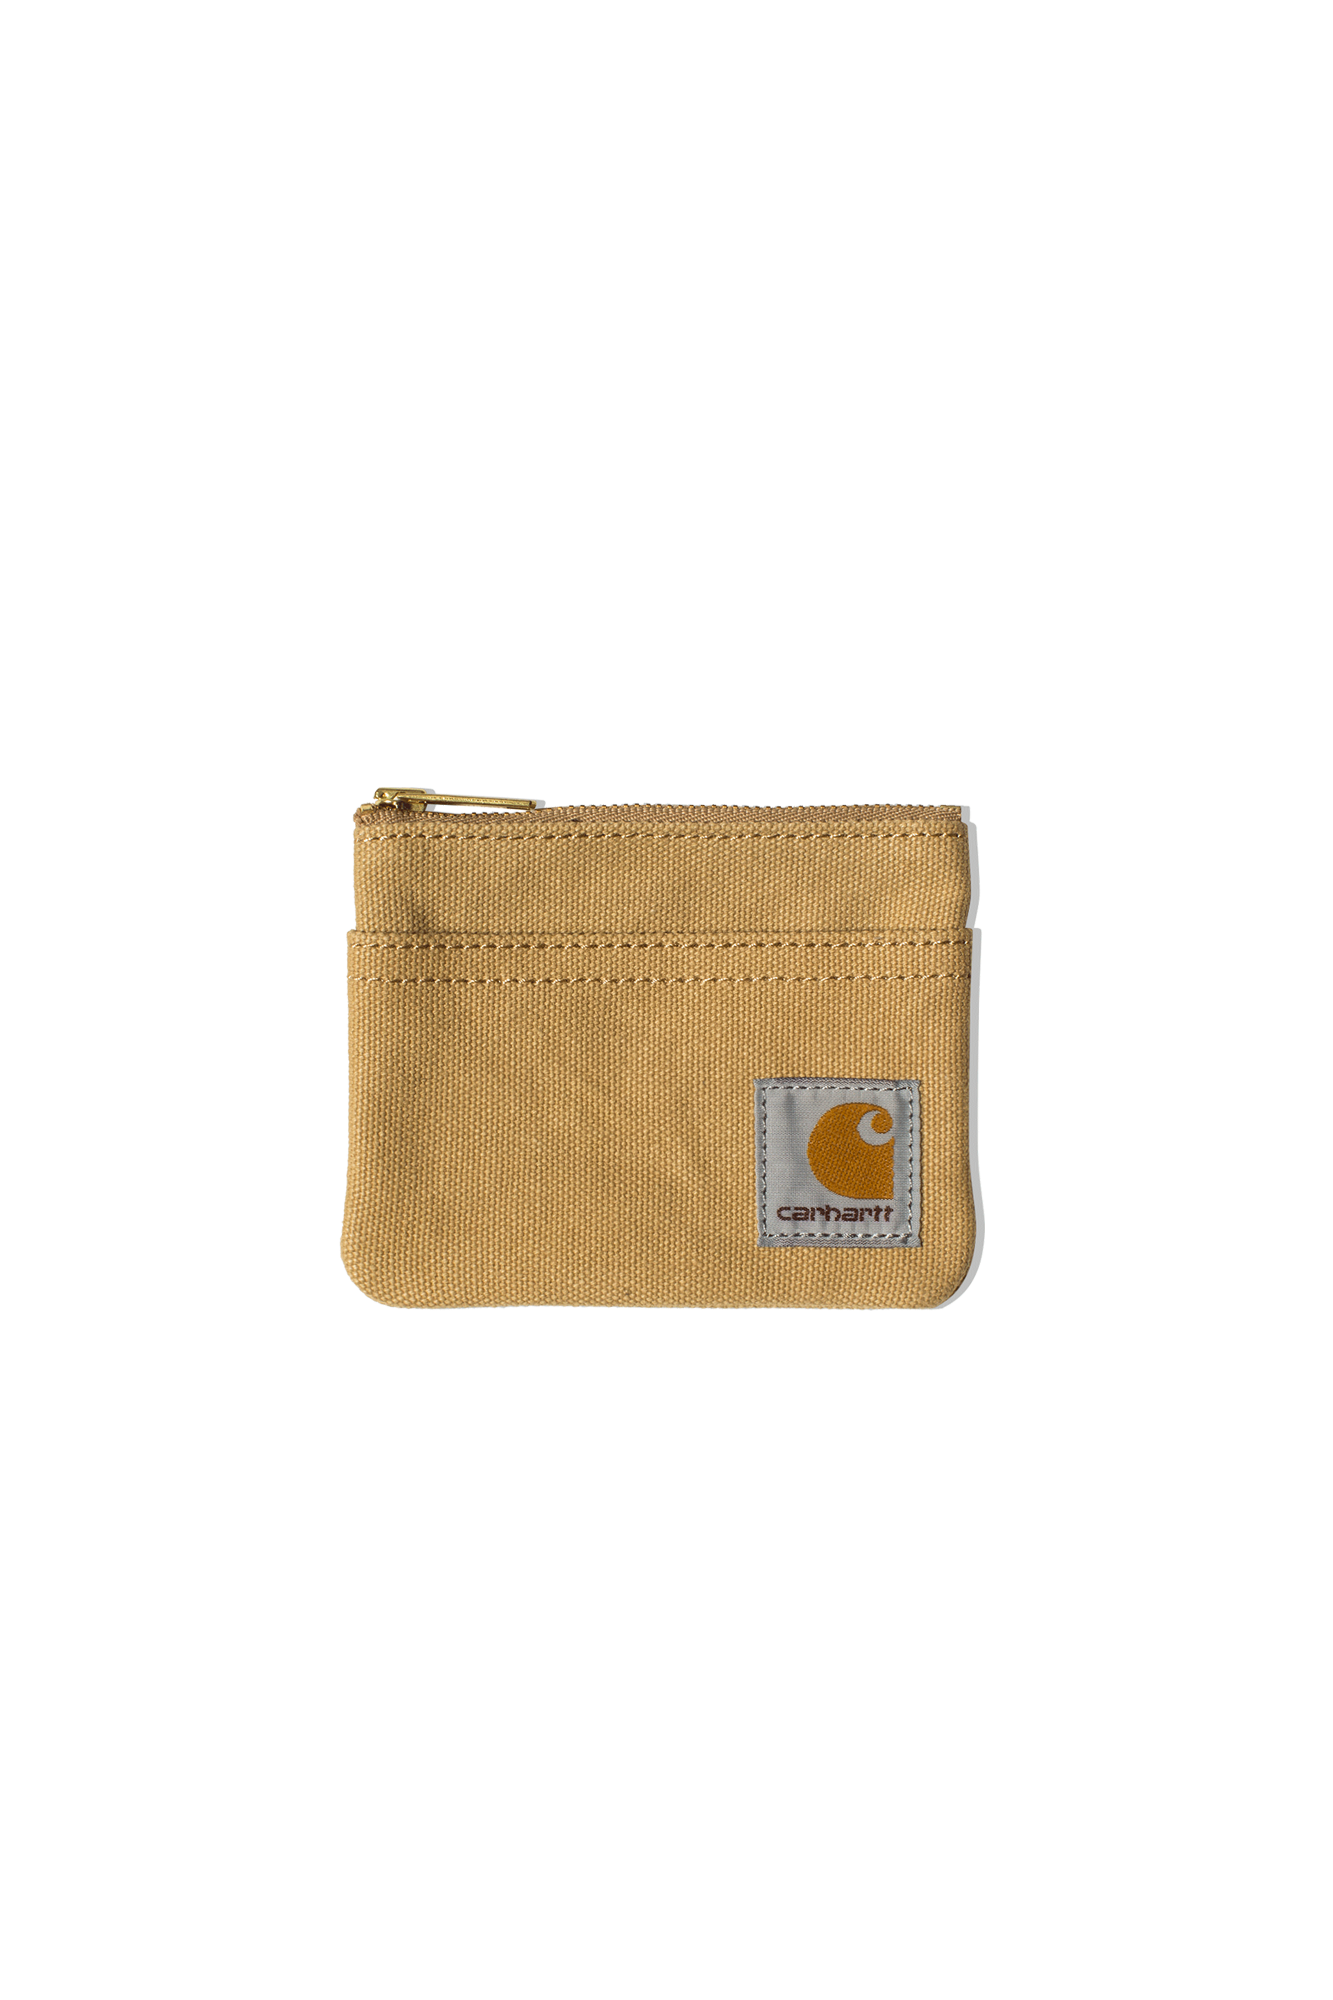 Carhartt Wallets Canvas Wallet Brown I028887.06#000#07E.90#OS - One Block Down